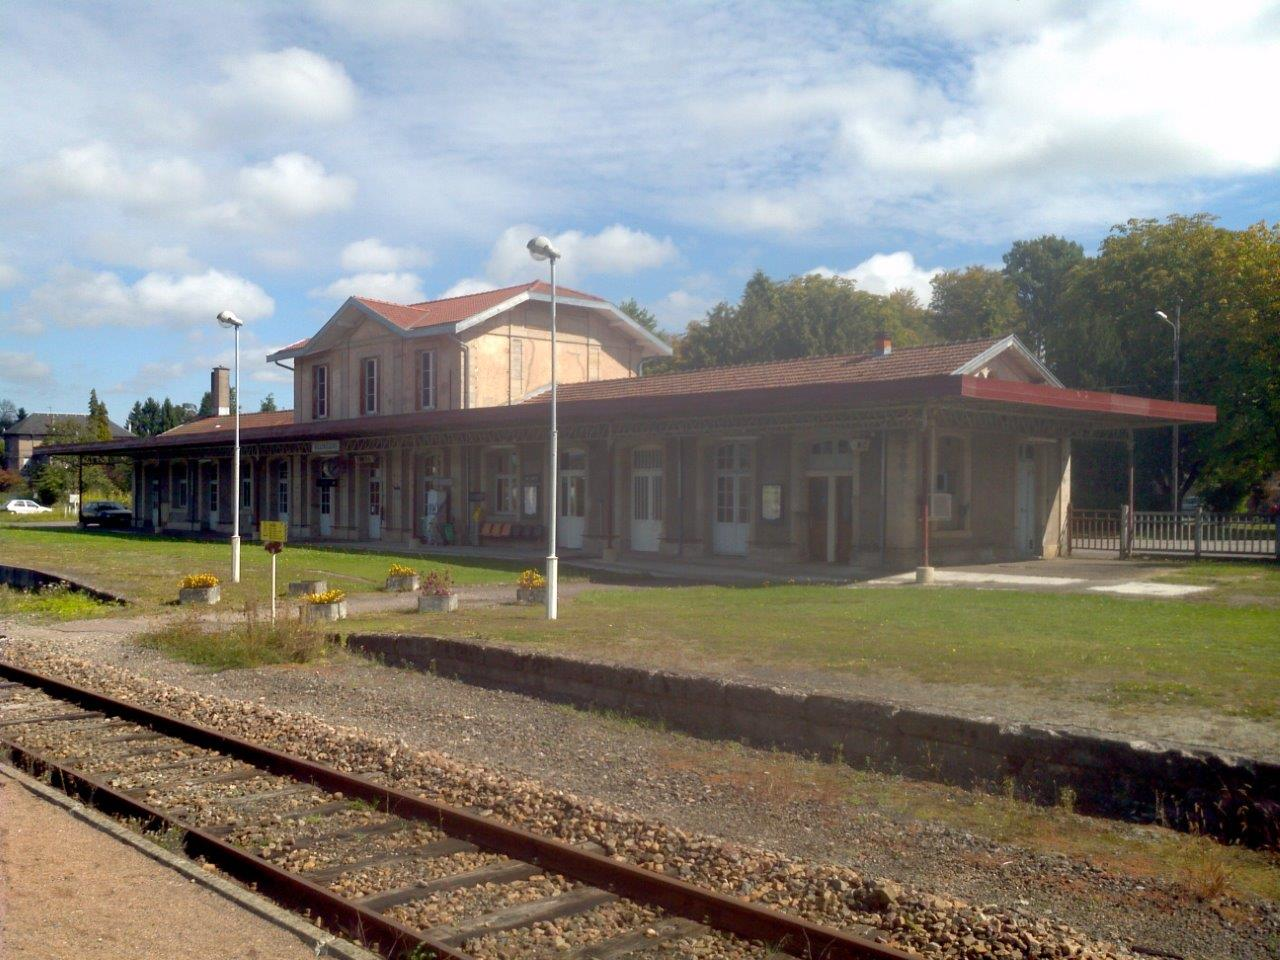 gare-d-aillevillers-train-station